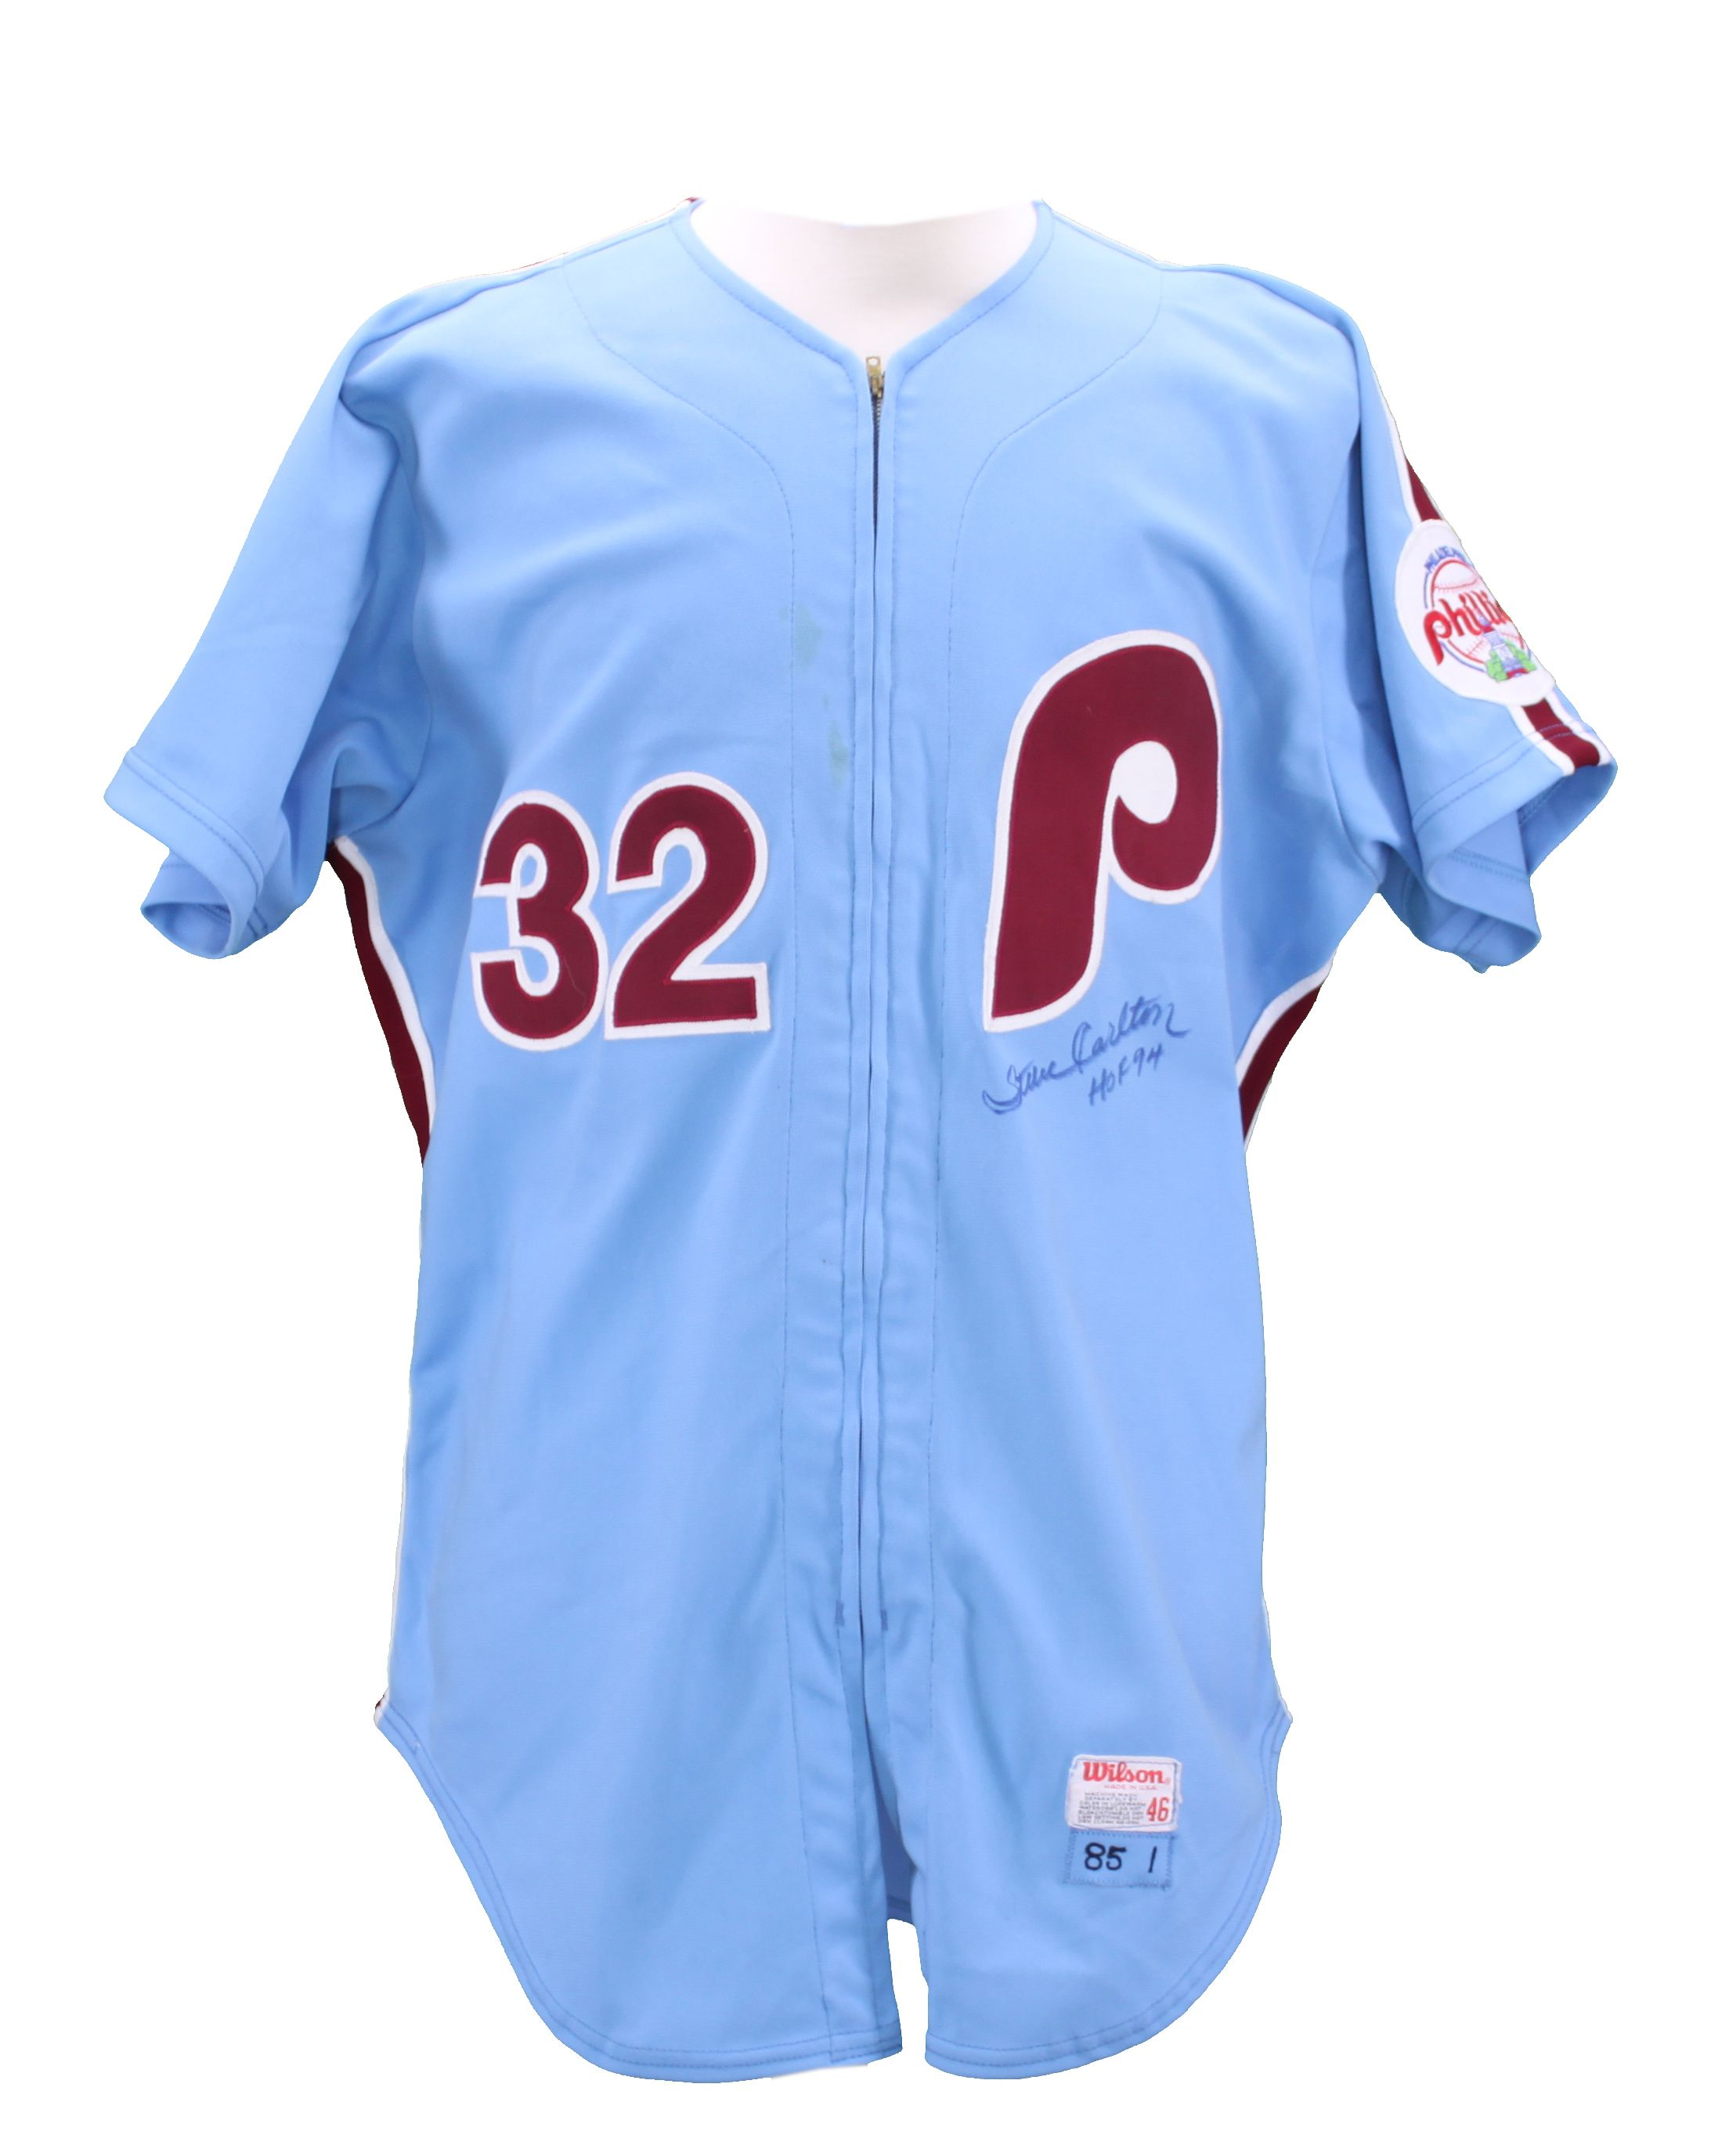 1985 Steve Carlton Philadelphia Phillies Autographed Game Used Jersey ... 704d4e96b2b